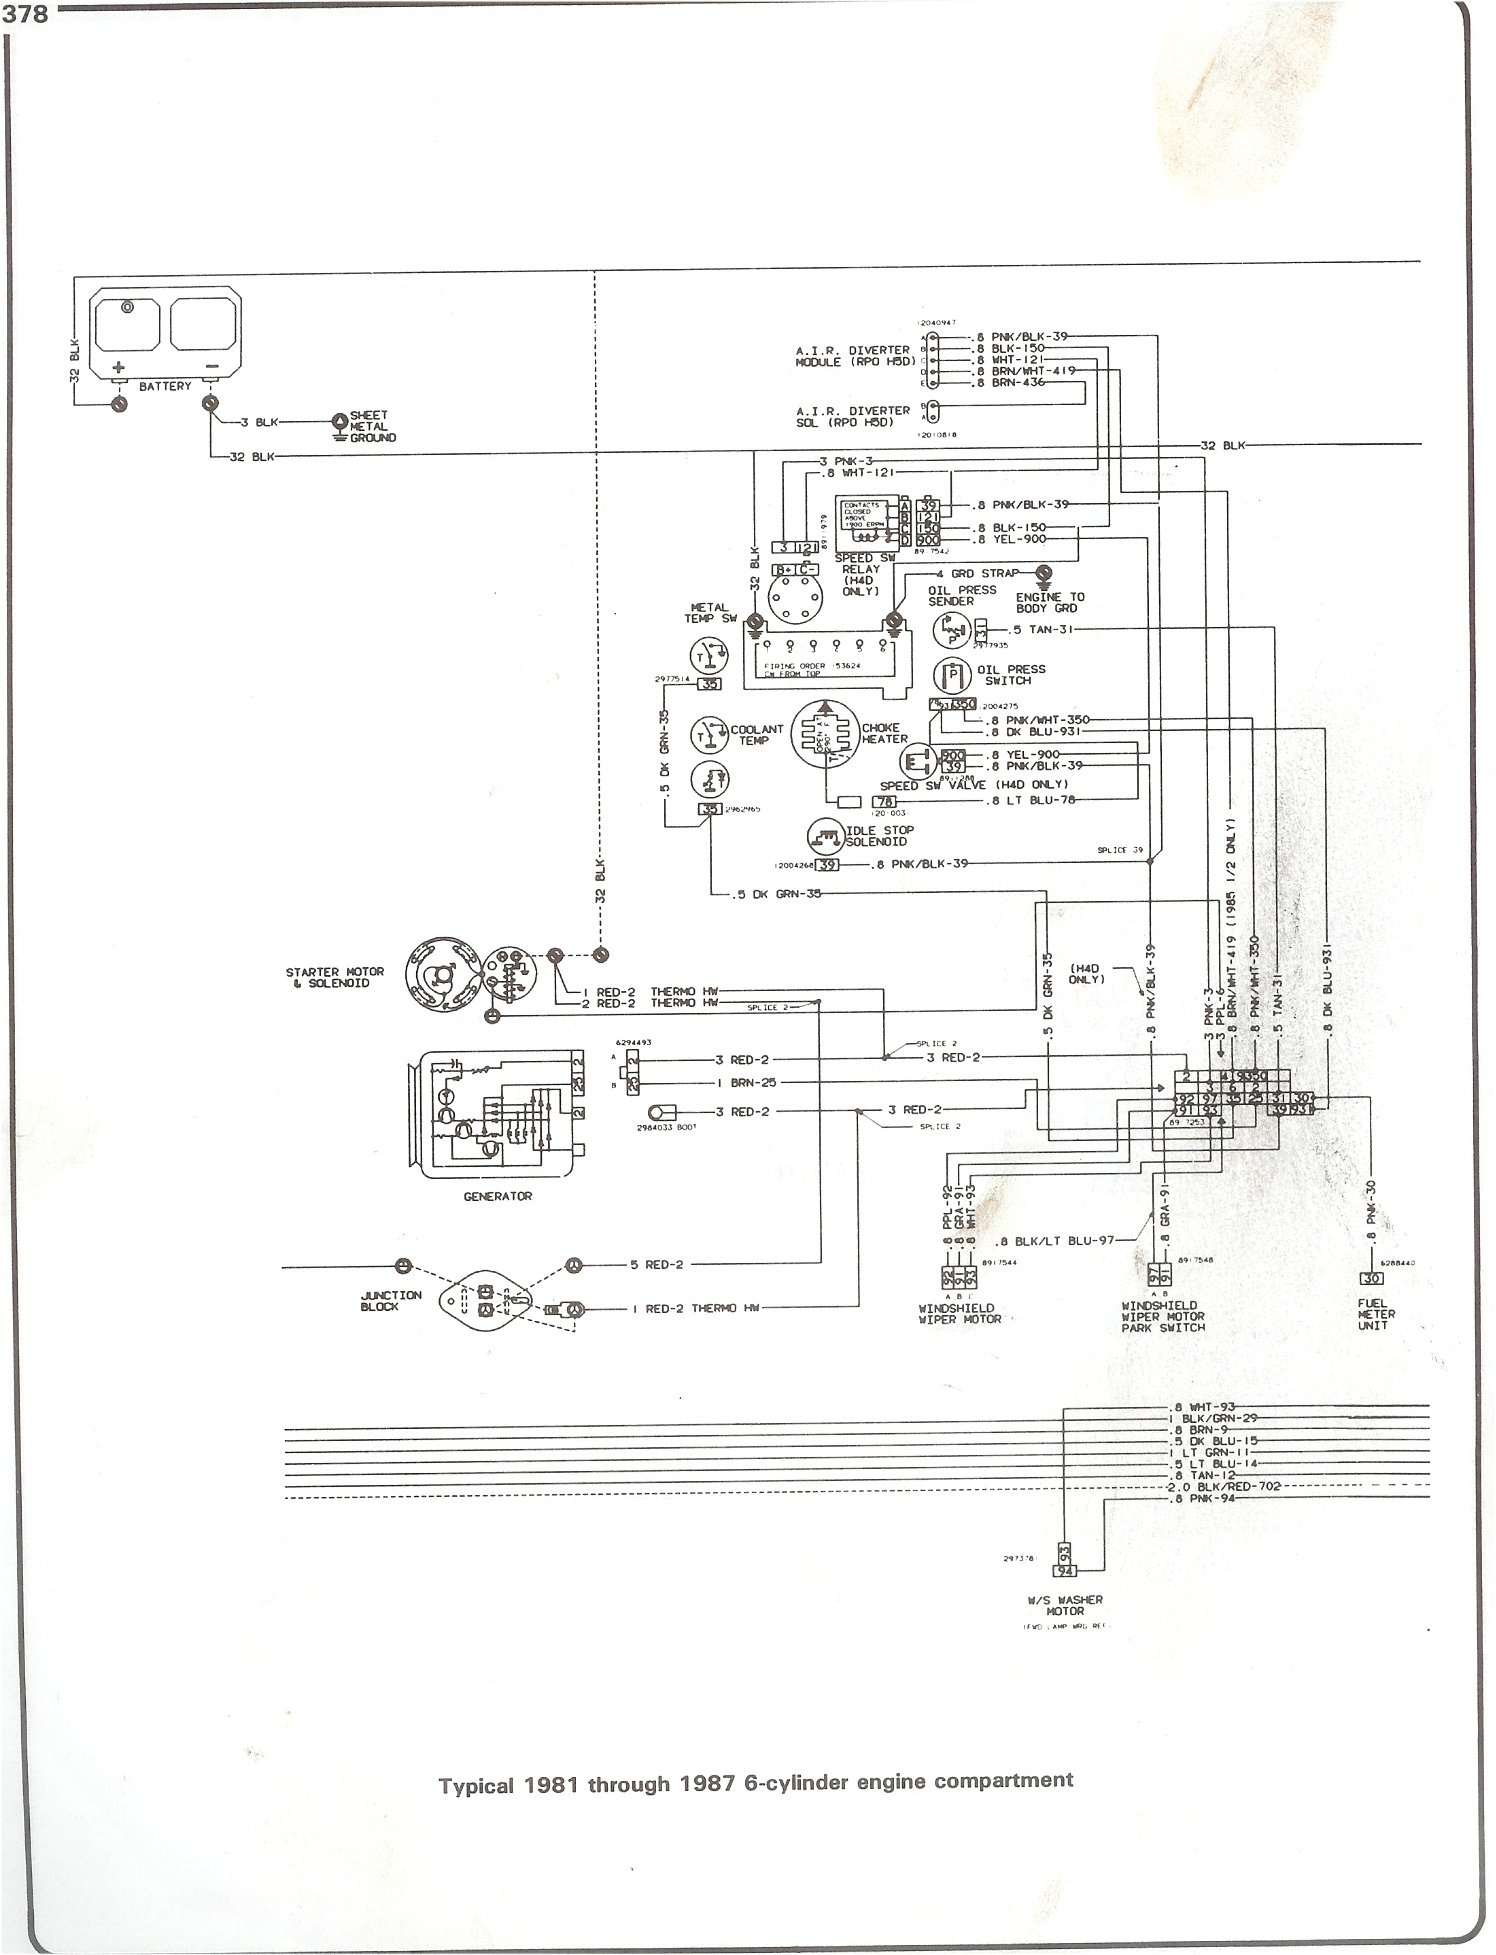 86 gmc sierra gauge wiring diagram online schematic diagram u2022 rh holyoak co 82 Chevy Truck Wiring Diagram 1978 Chevy Truck Wiring Diagram